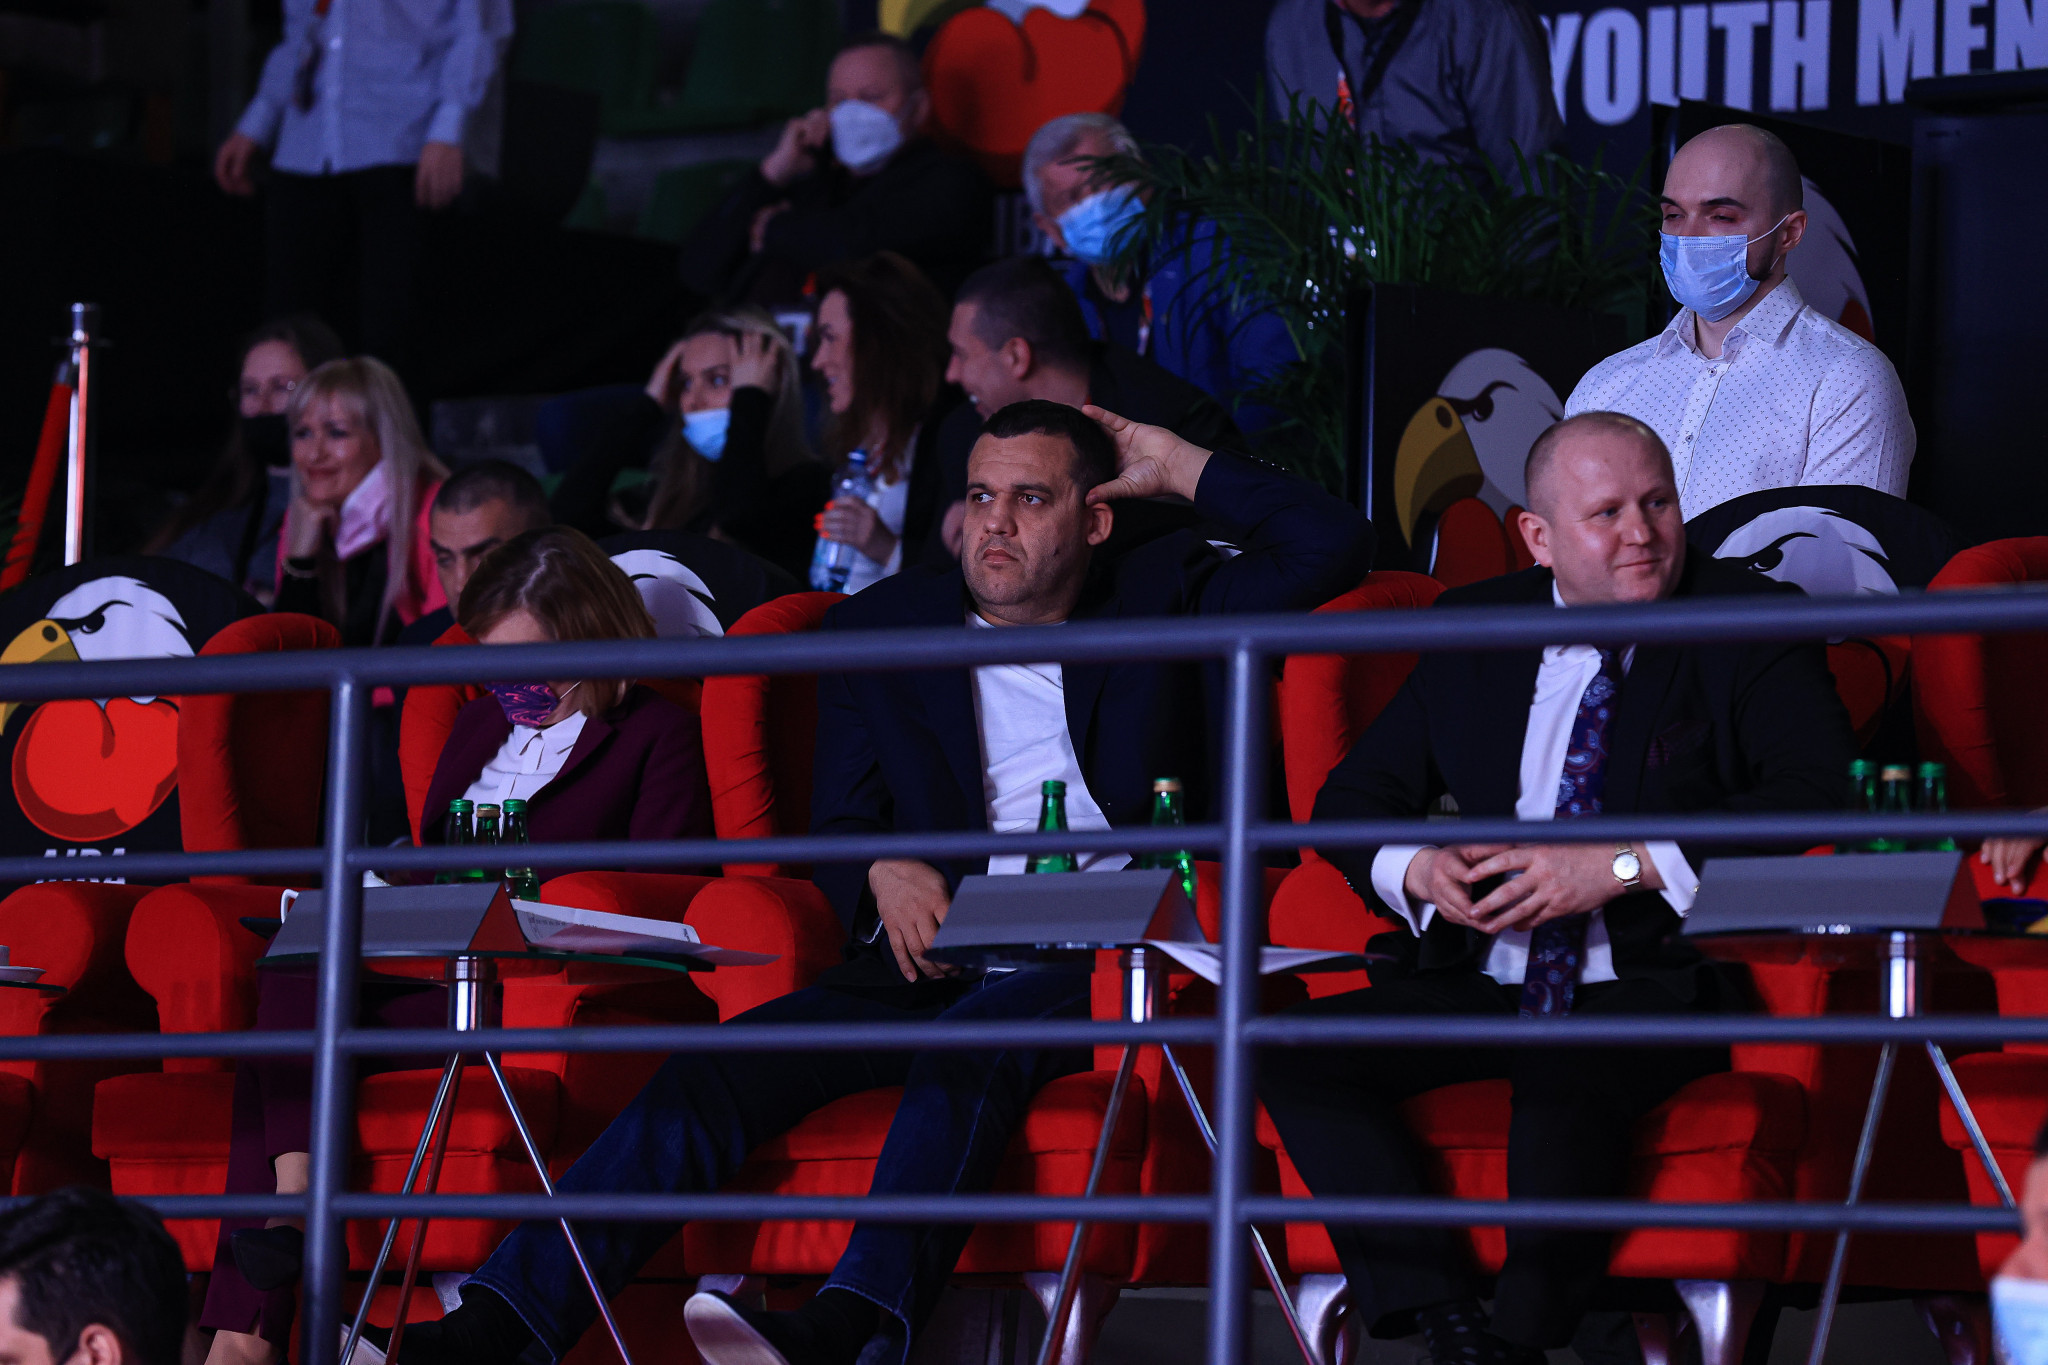 AIBA President Umar Kremlev, centre, observes proceedings on the final day of the AIBA Youth World Championships ©AIBA